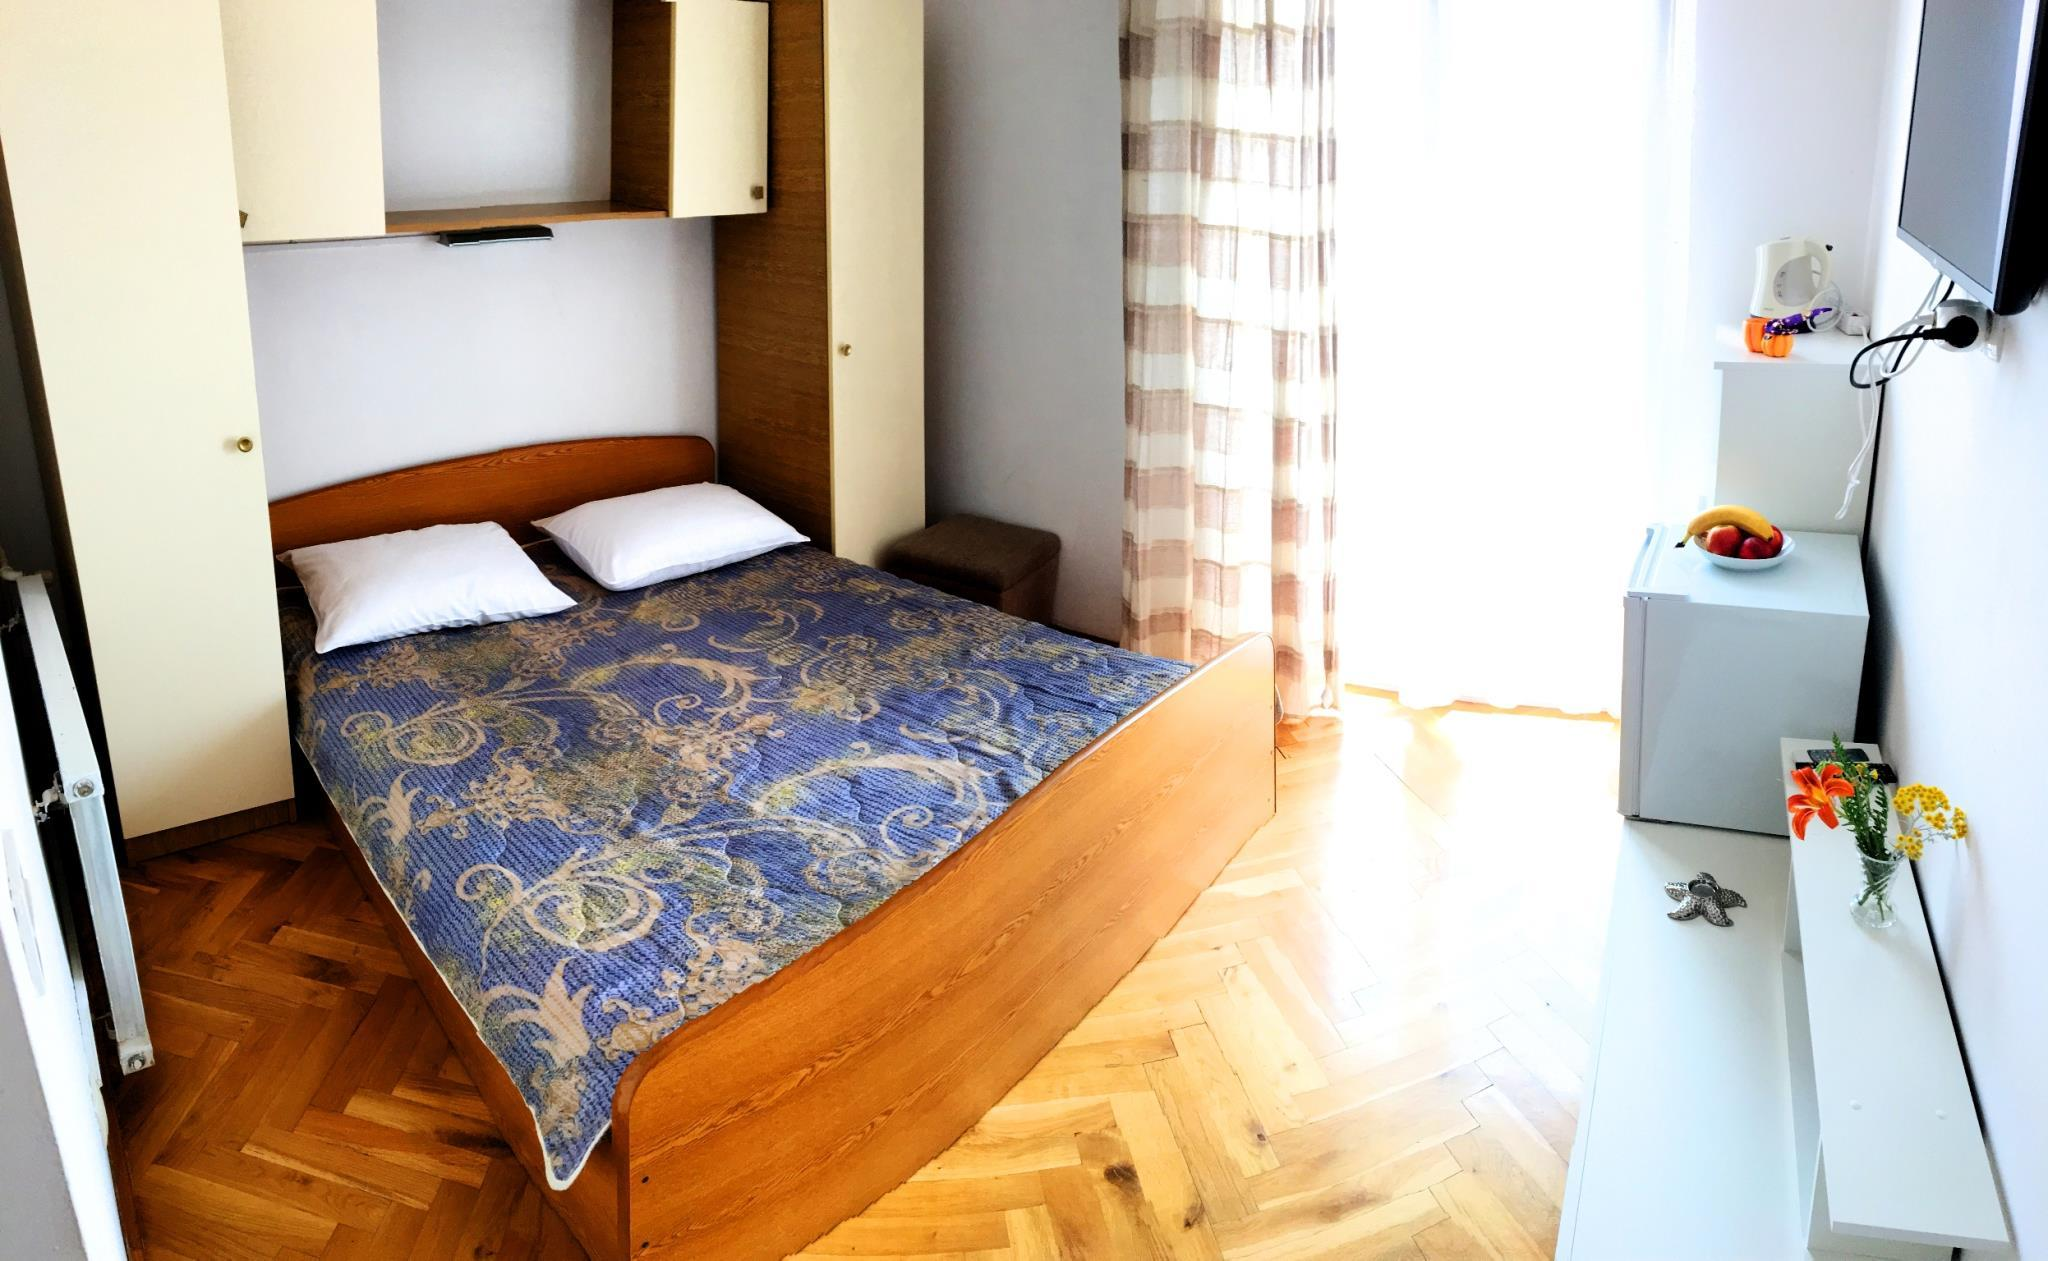 Private Room For Two People In Vodice